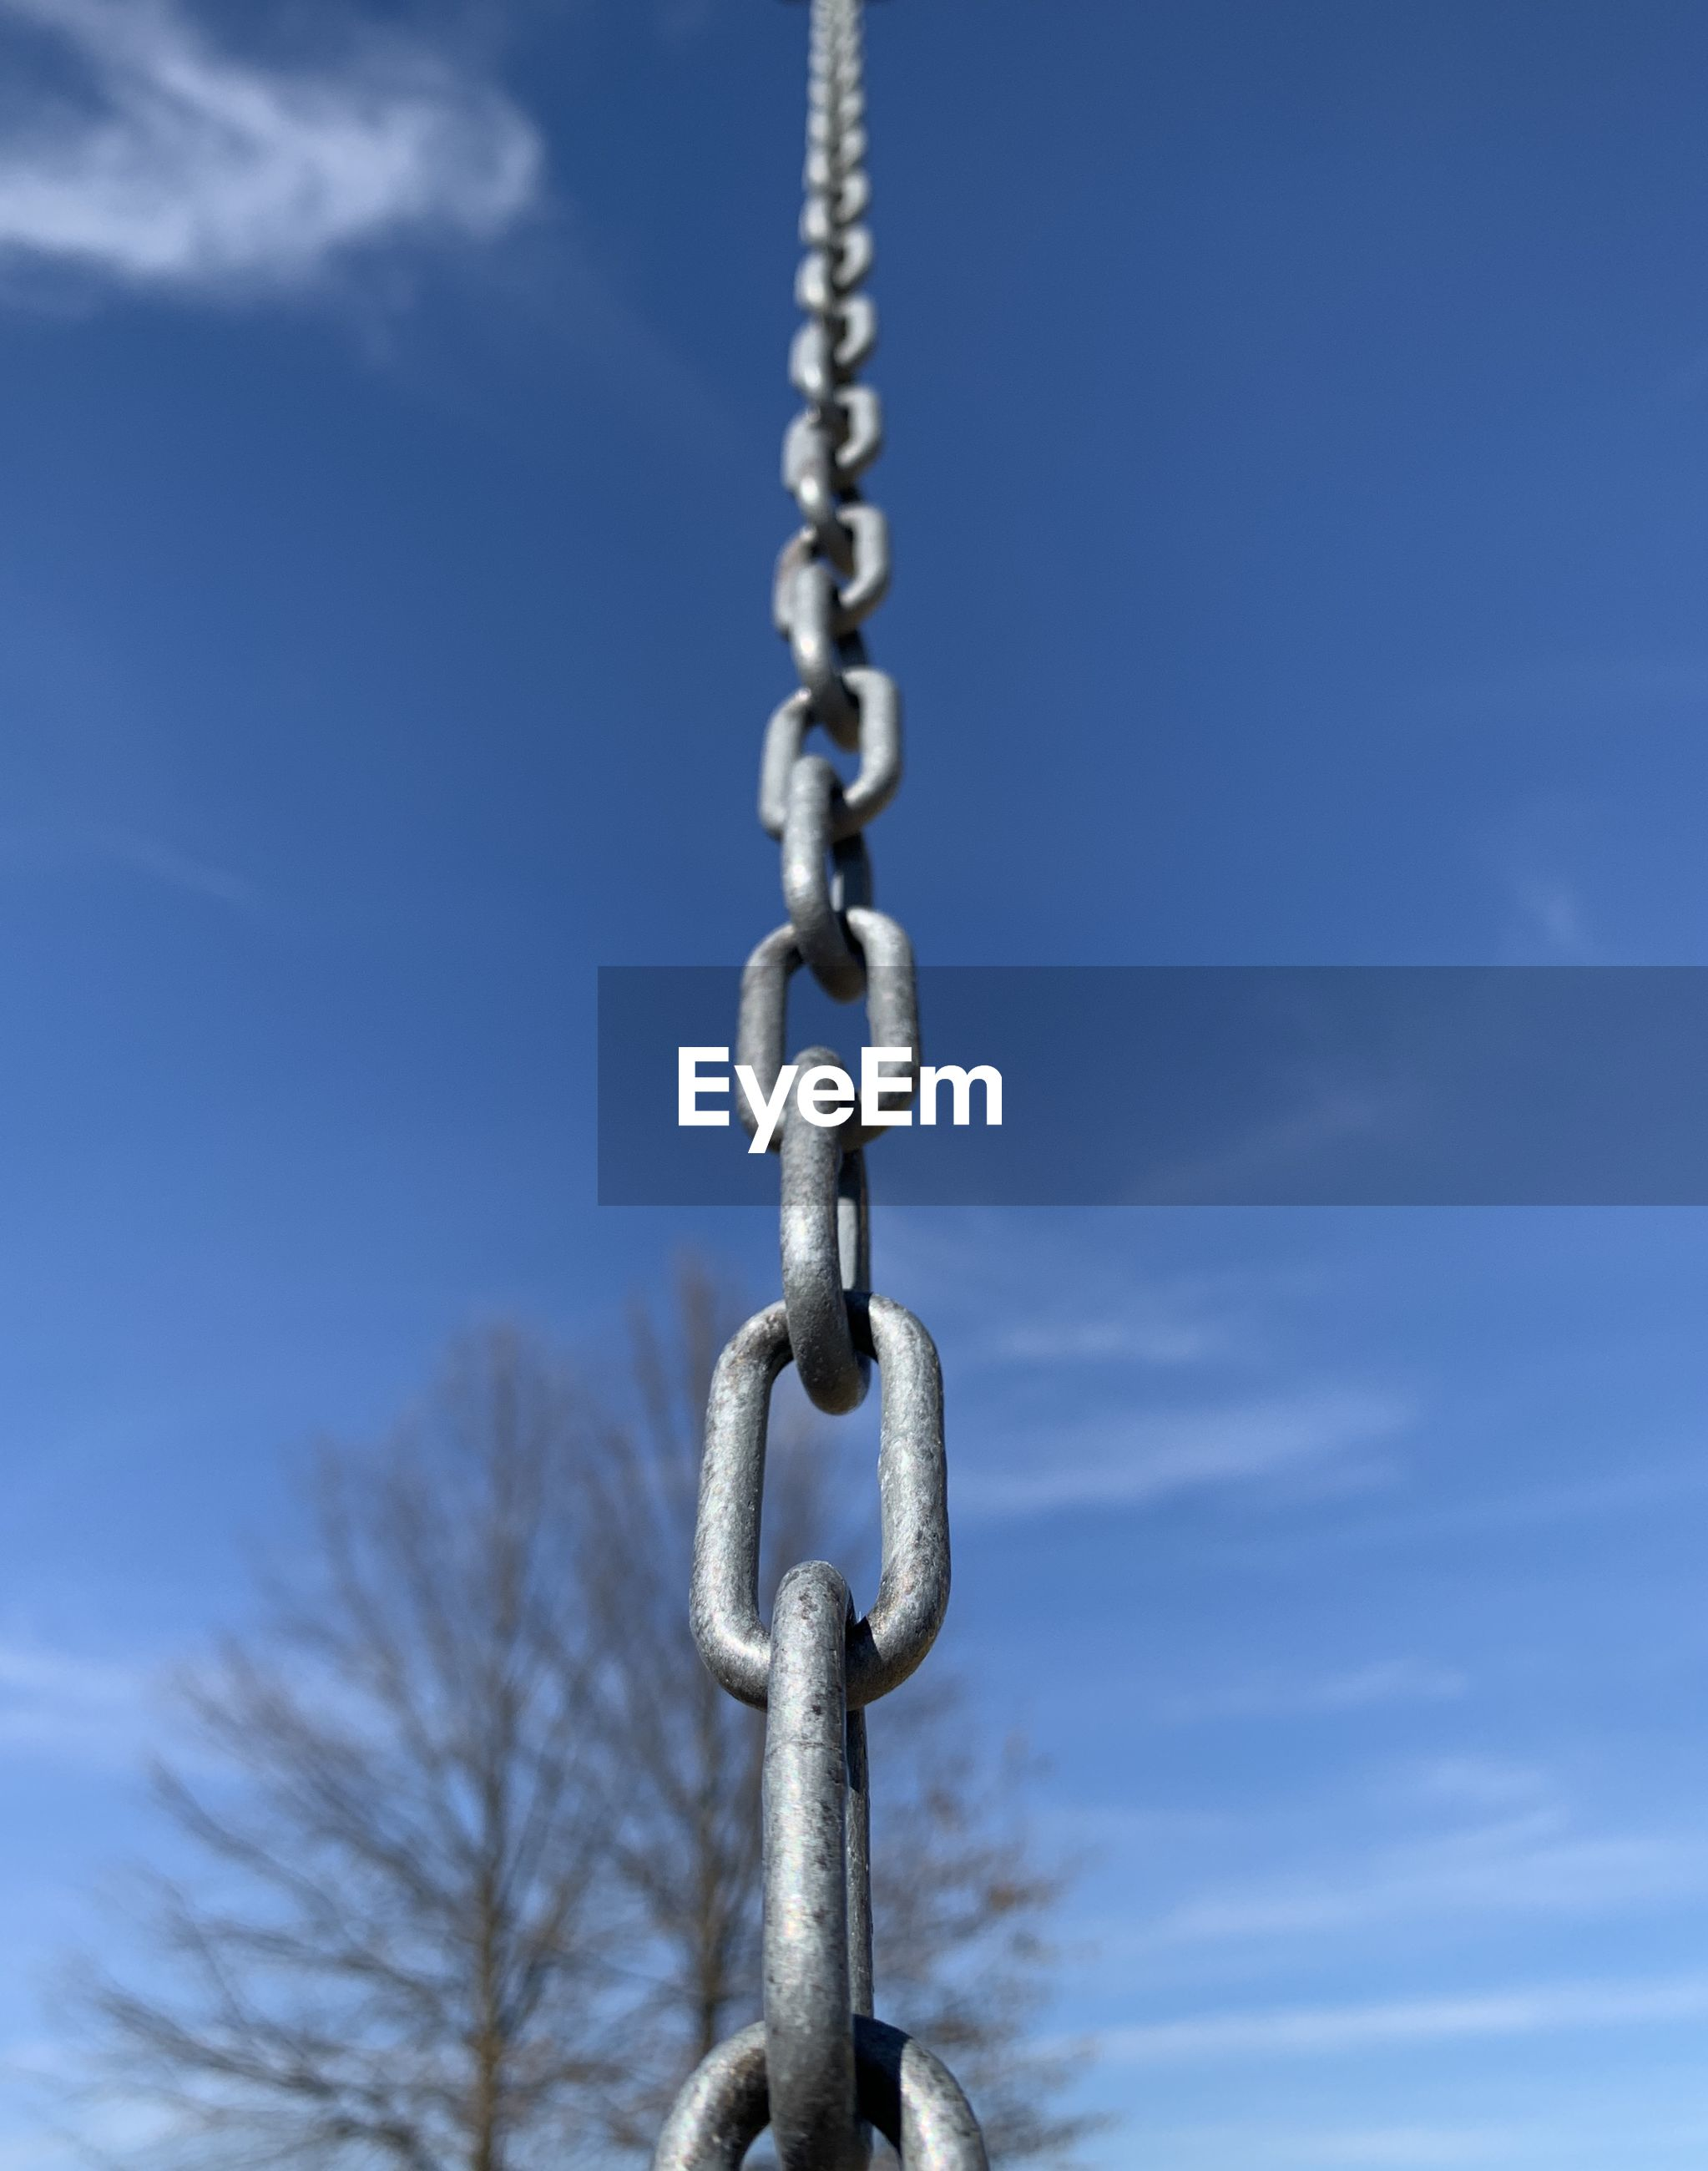 CLOSE-UP OF CHAIN AGAINST BLUE SKY